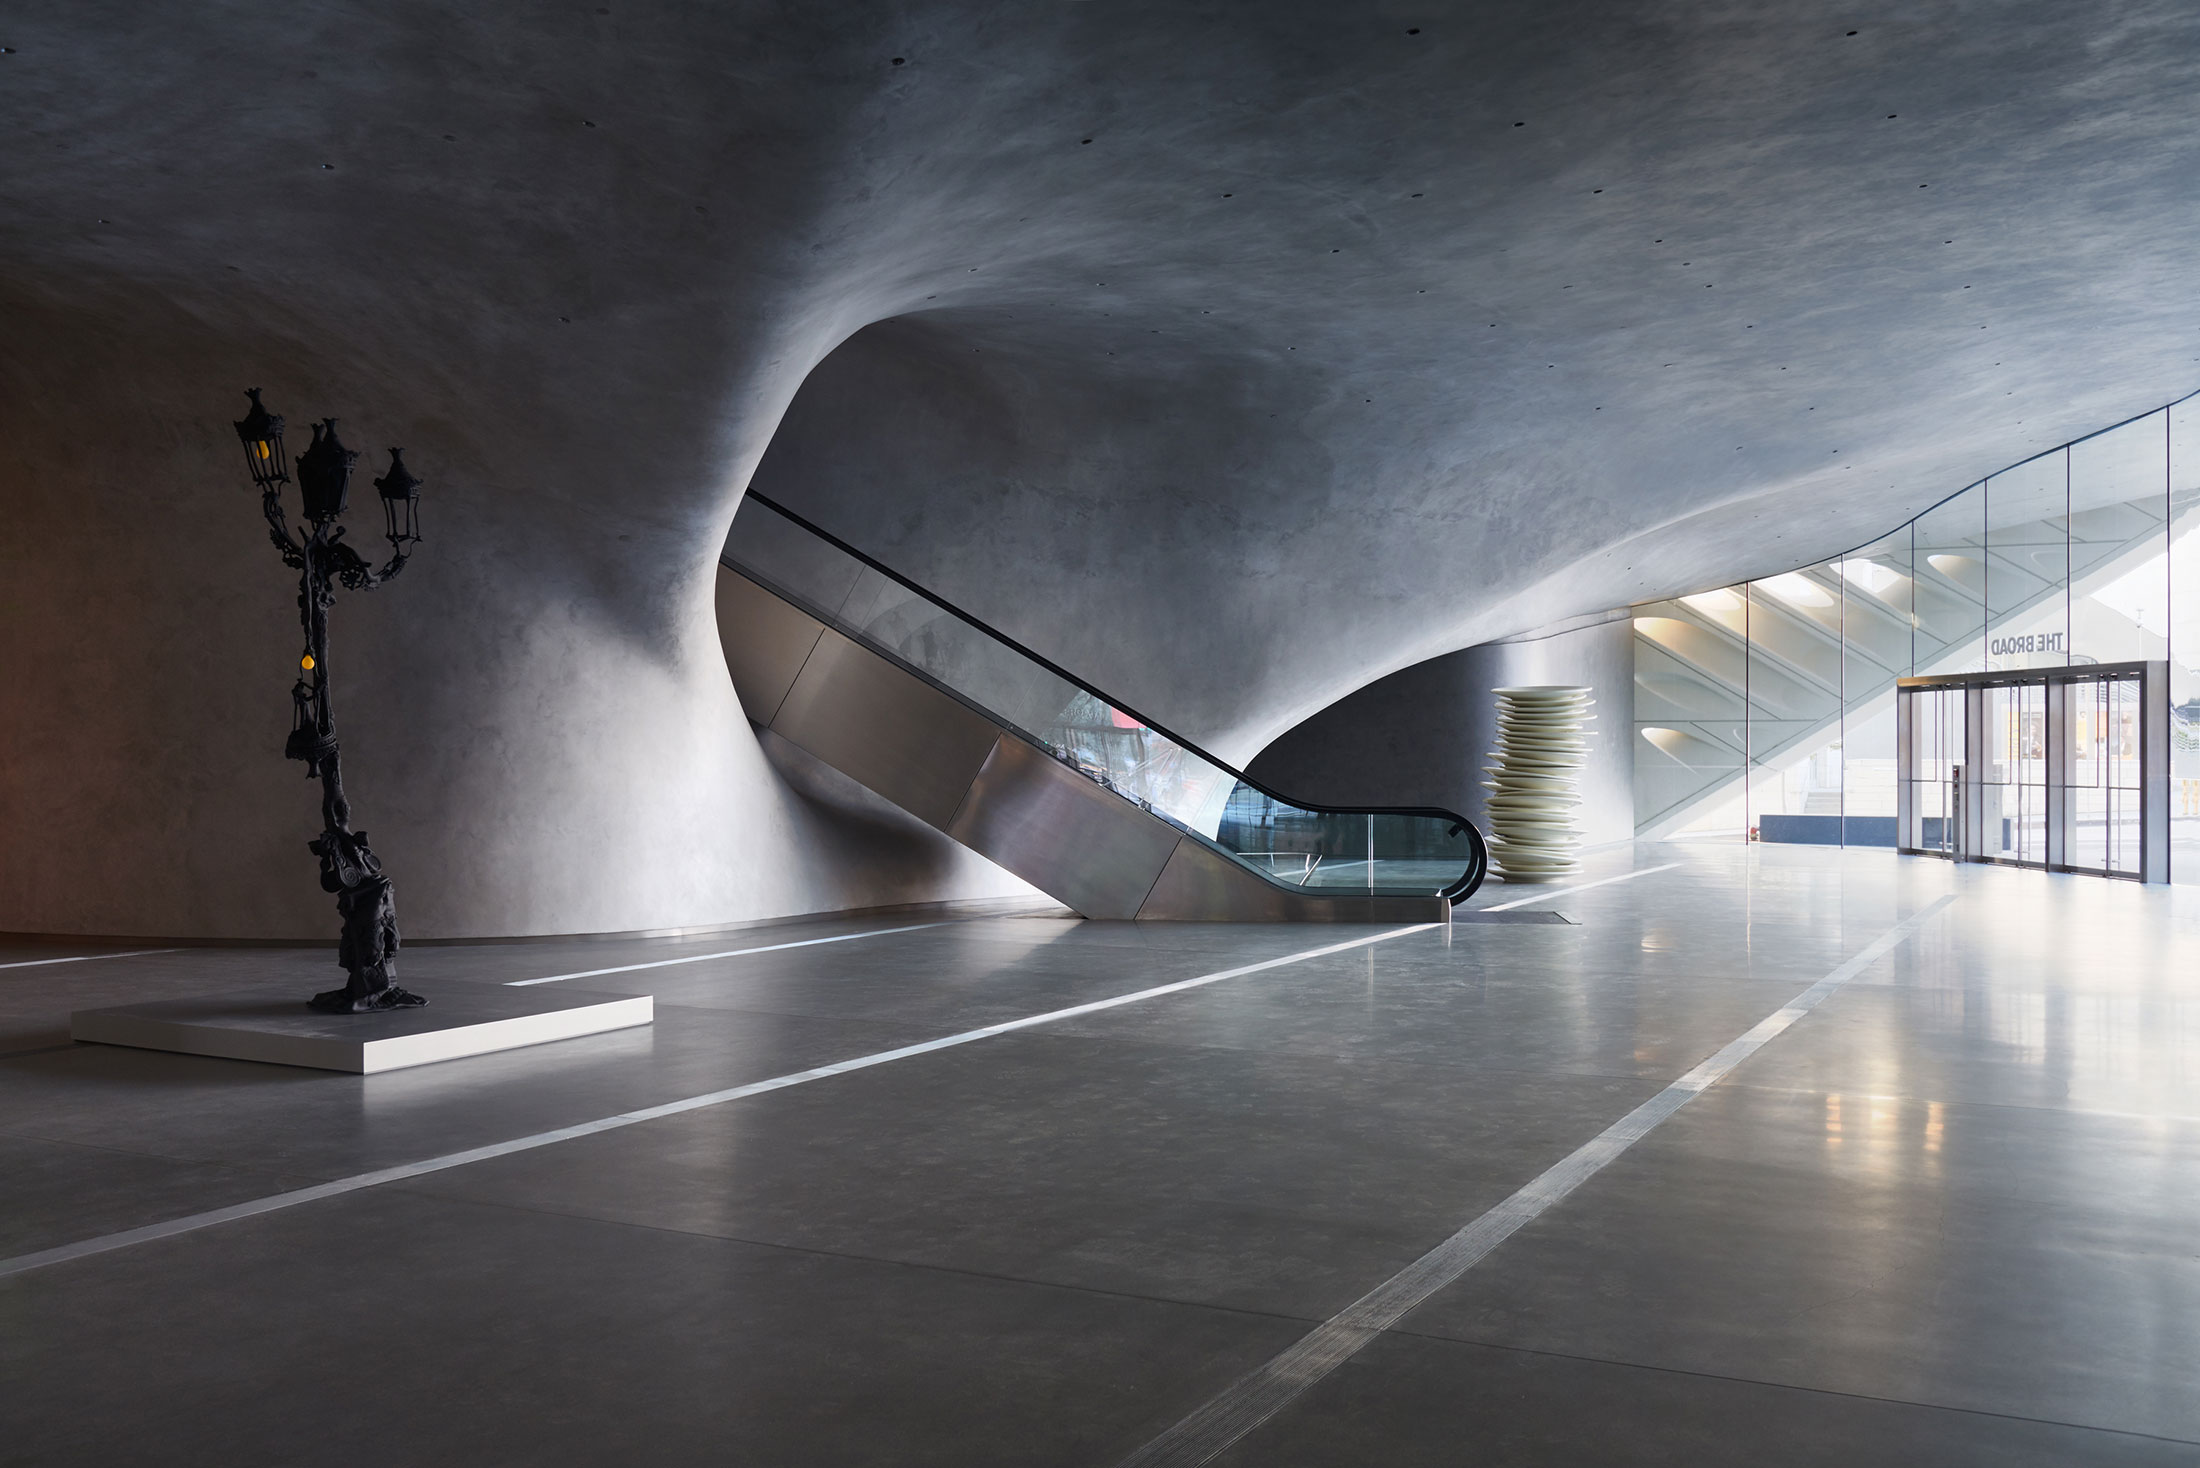 The Broad Lobby